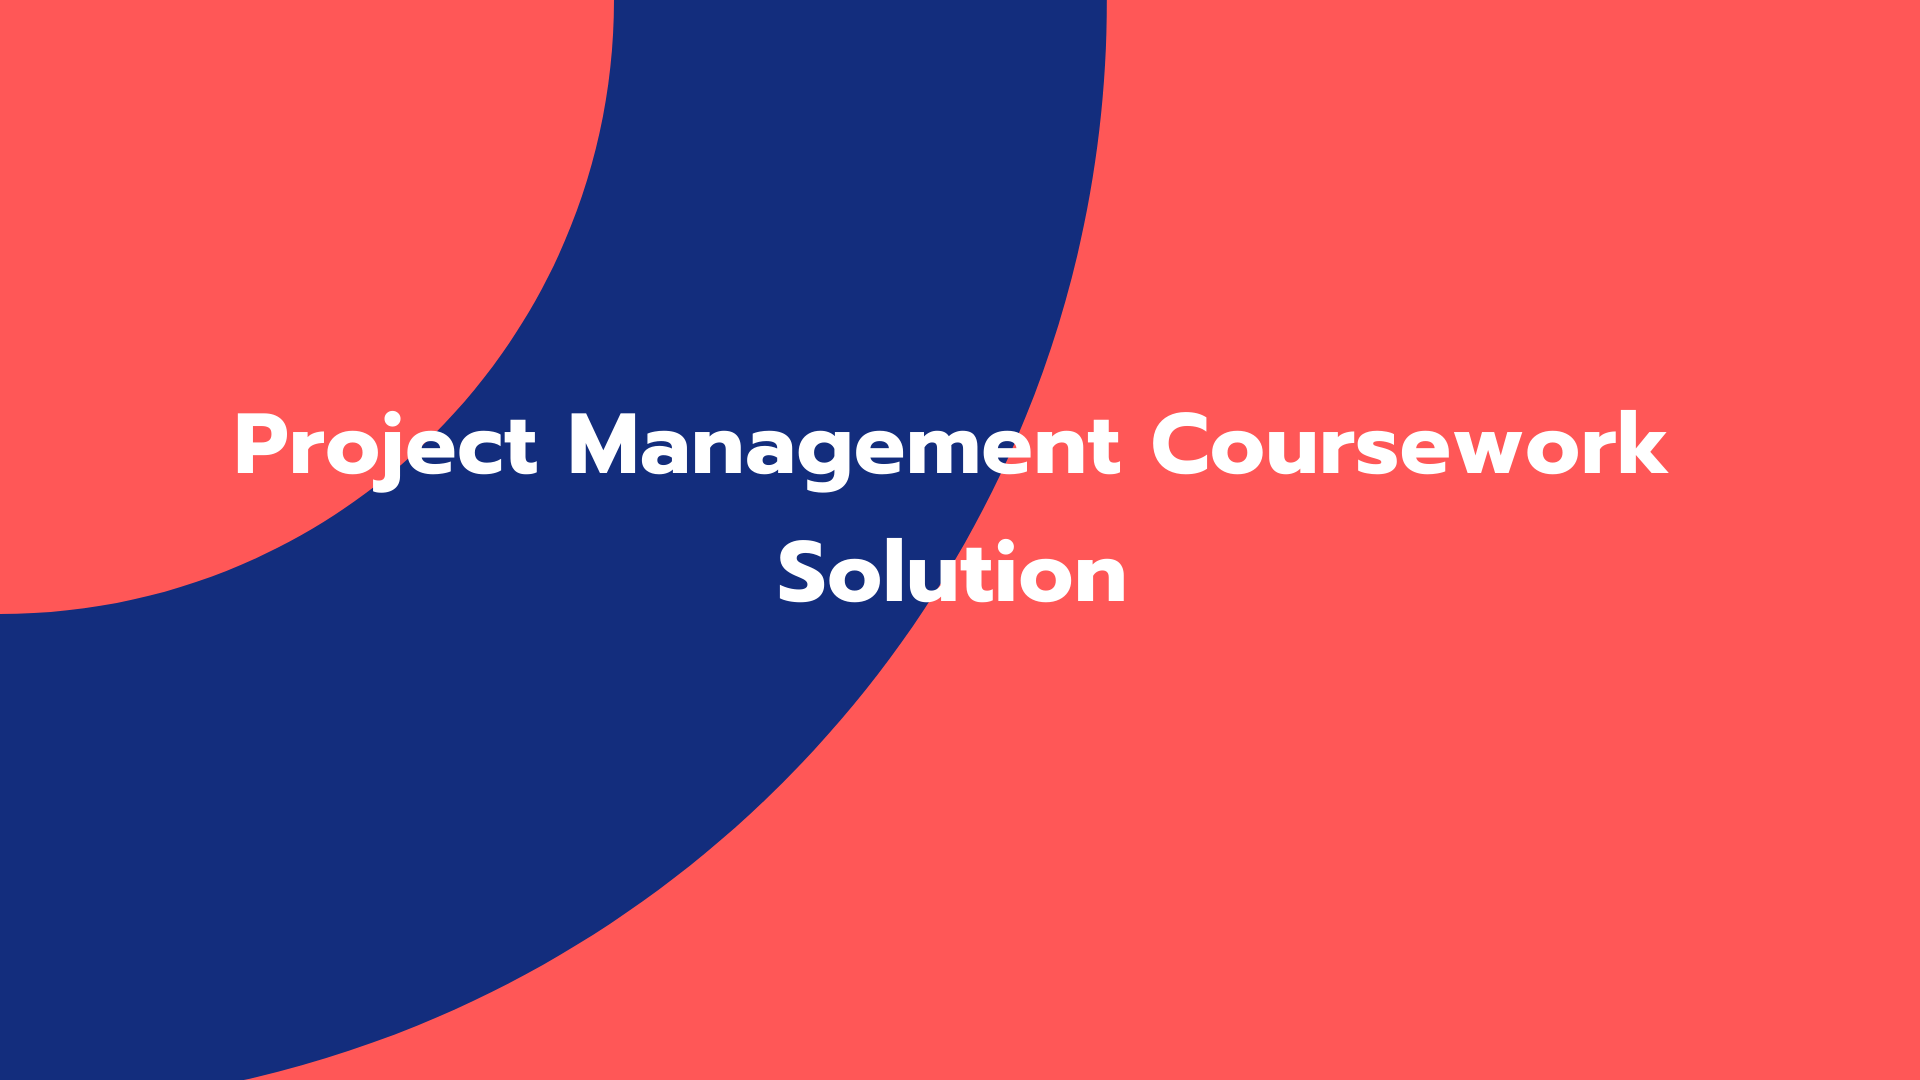 Project Management Coursework Solution